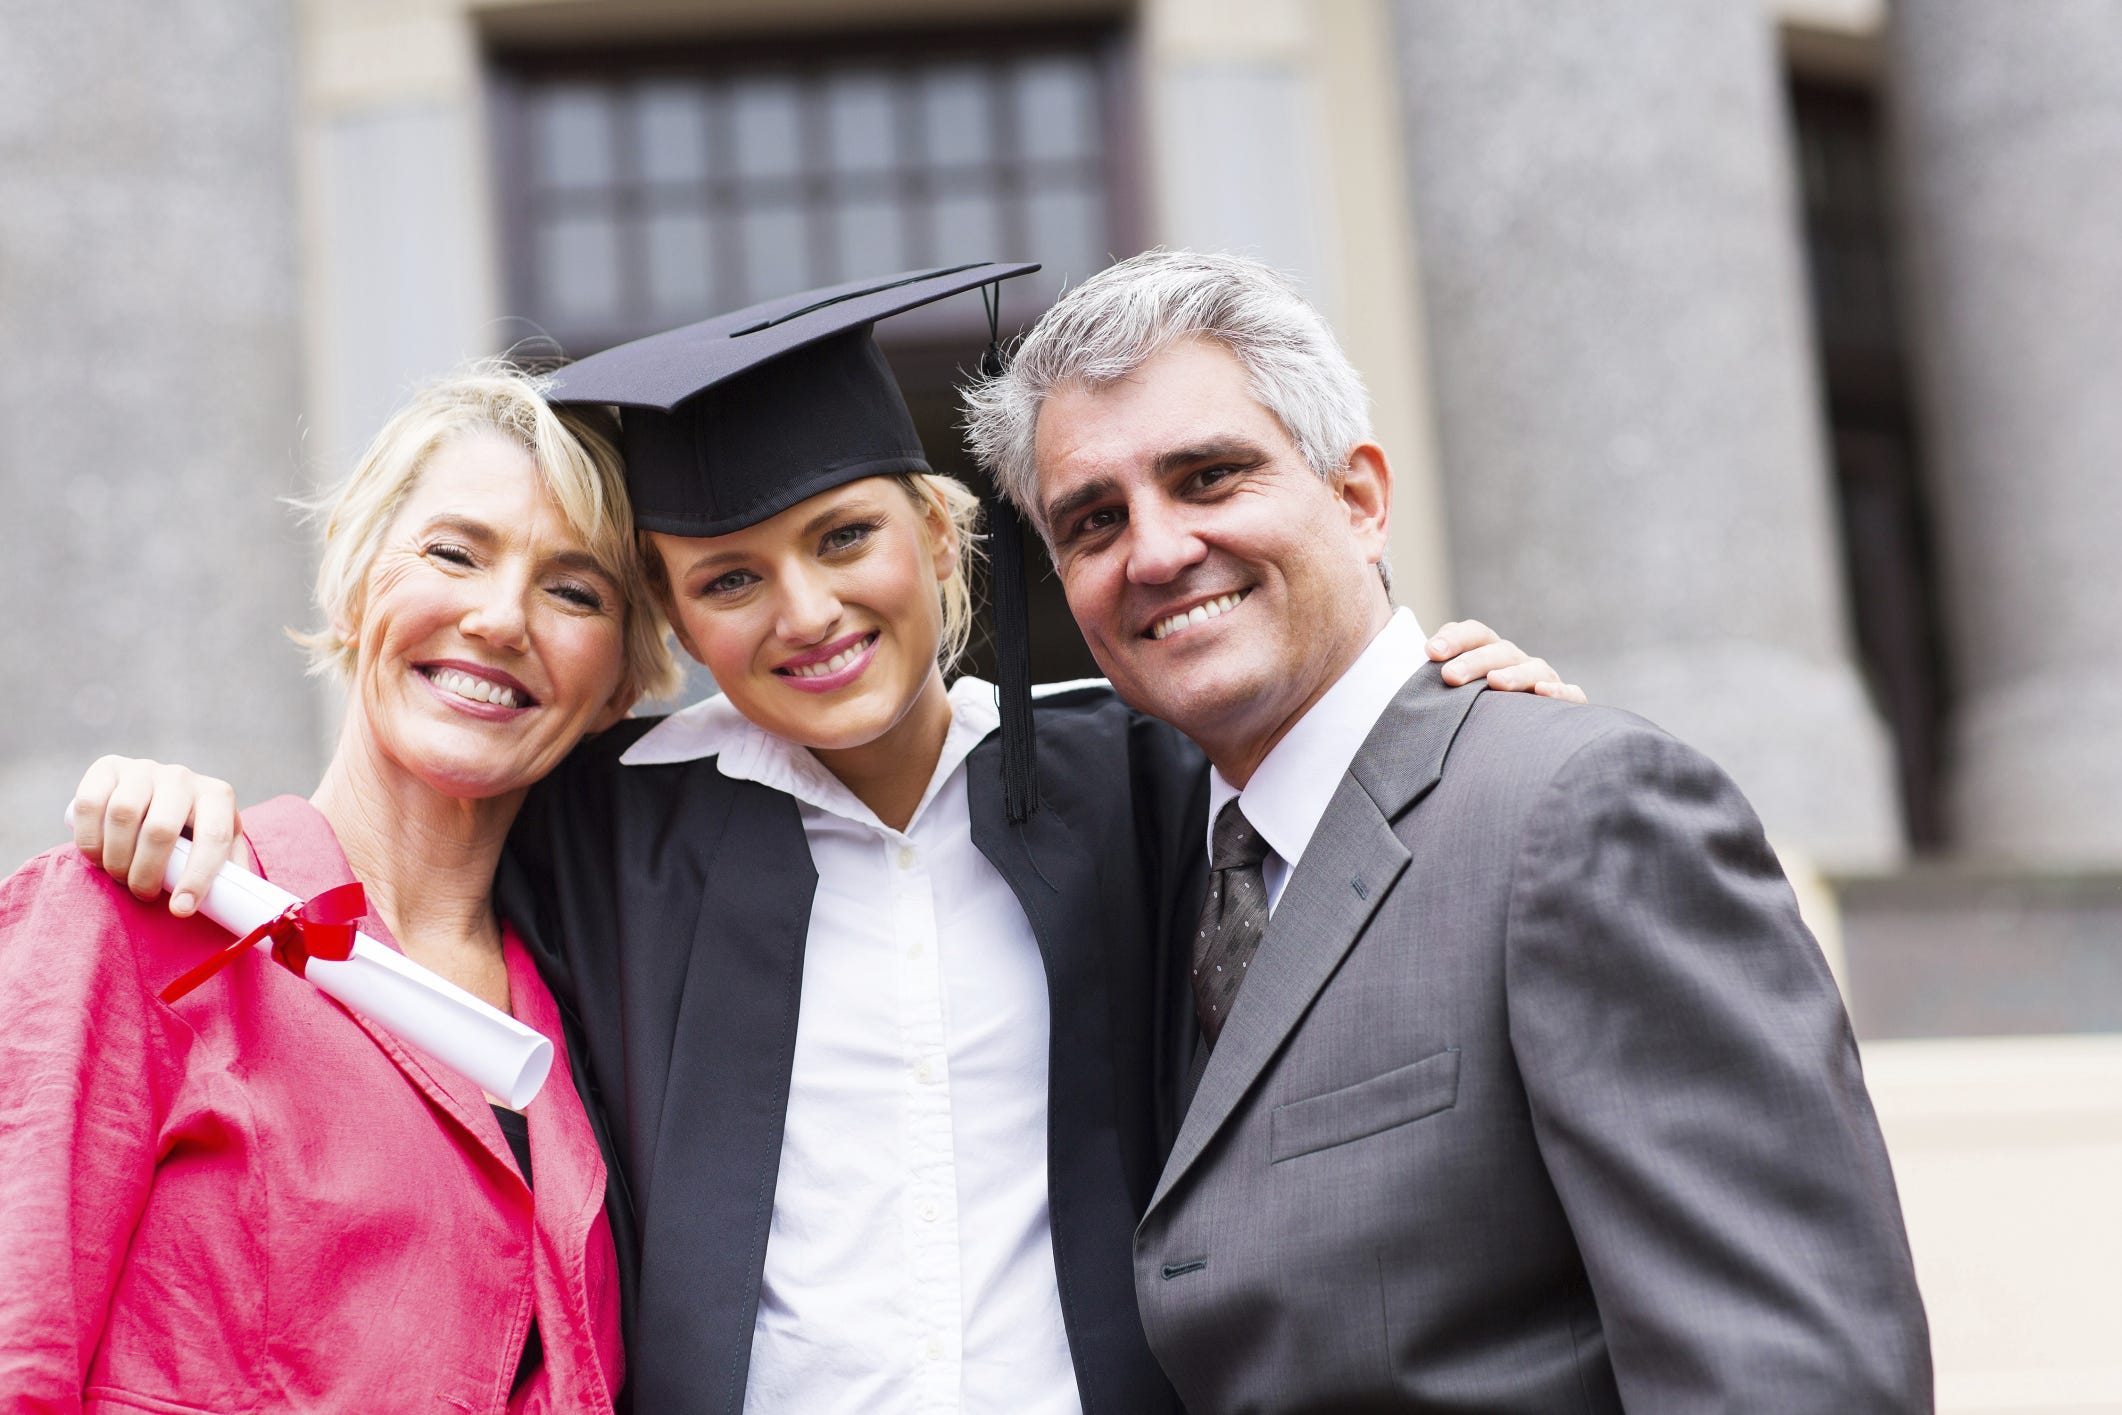 For many parents, paying tuition tops retirement